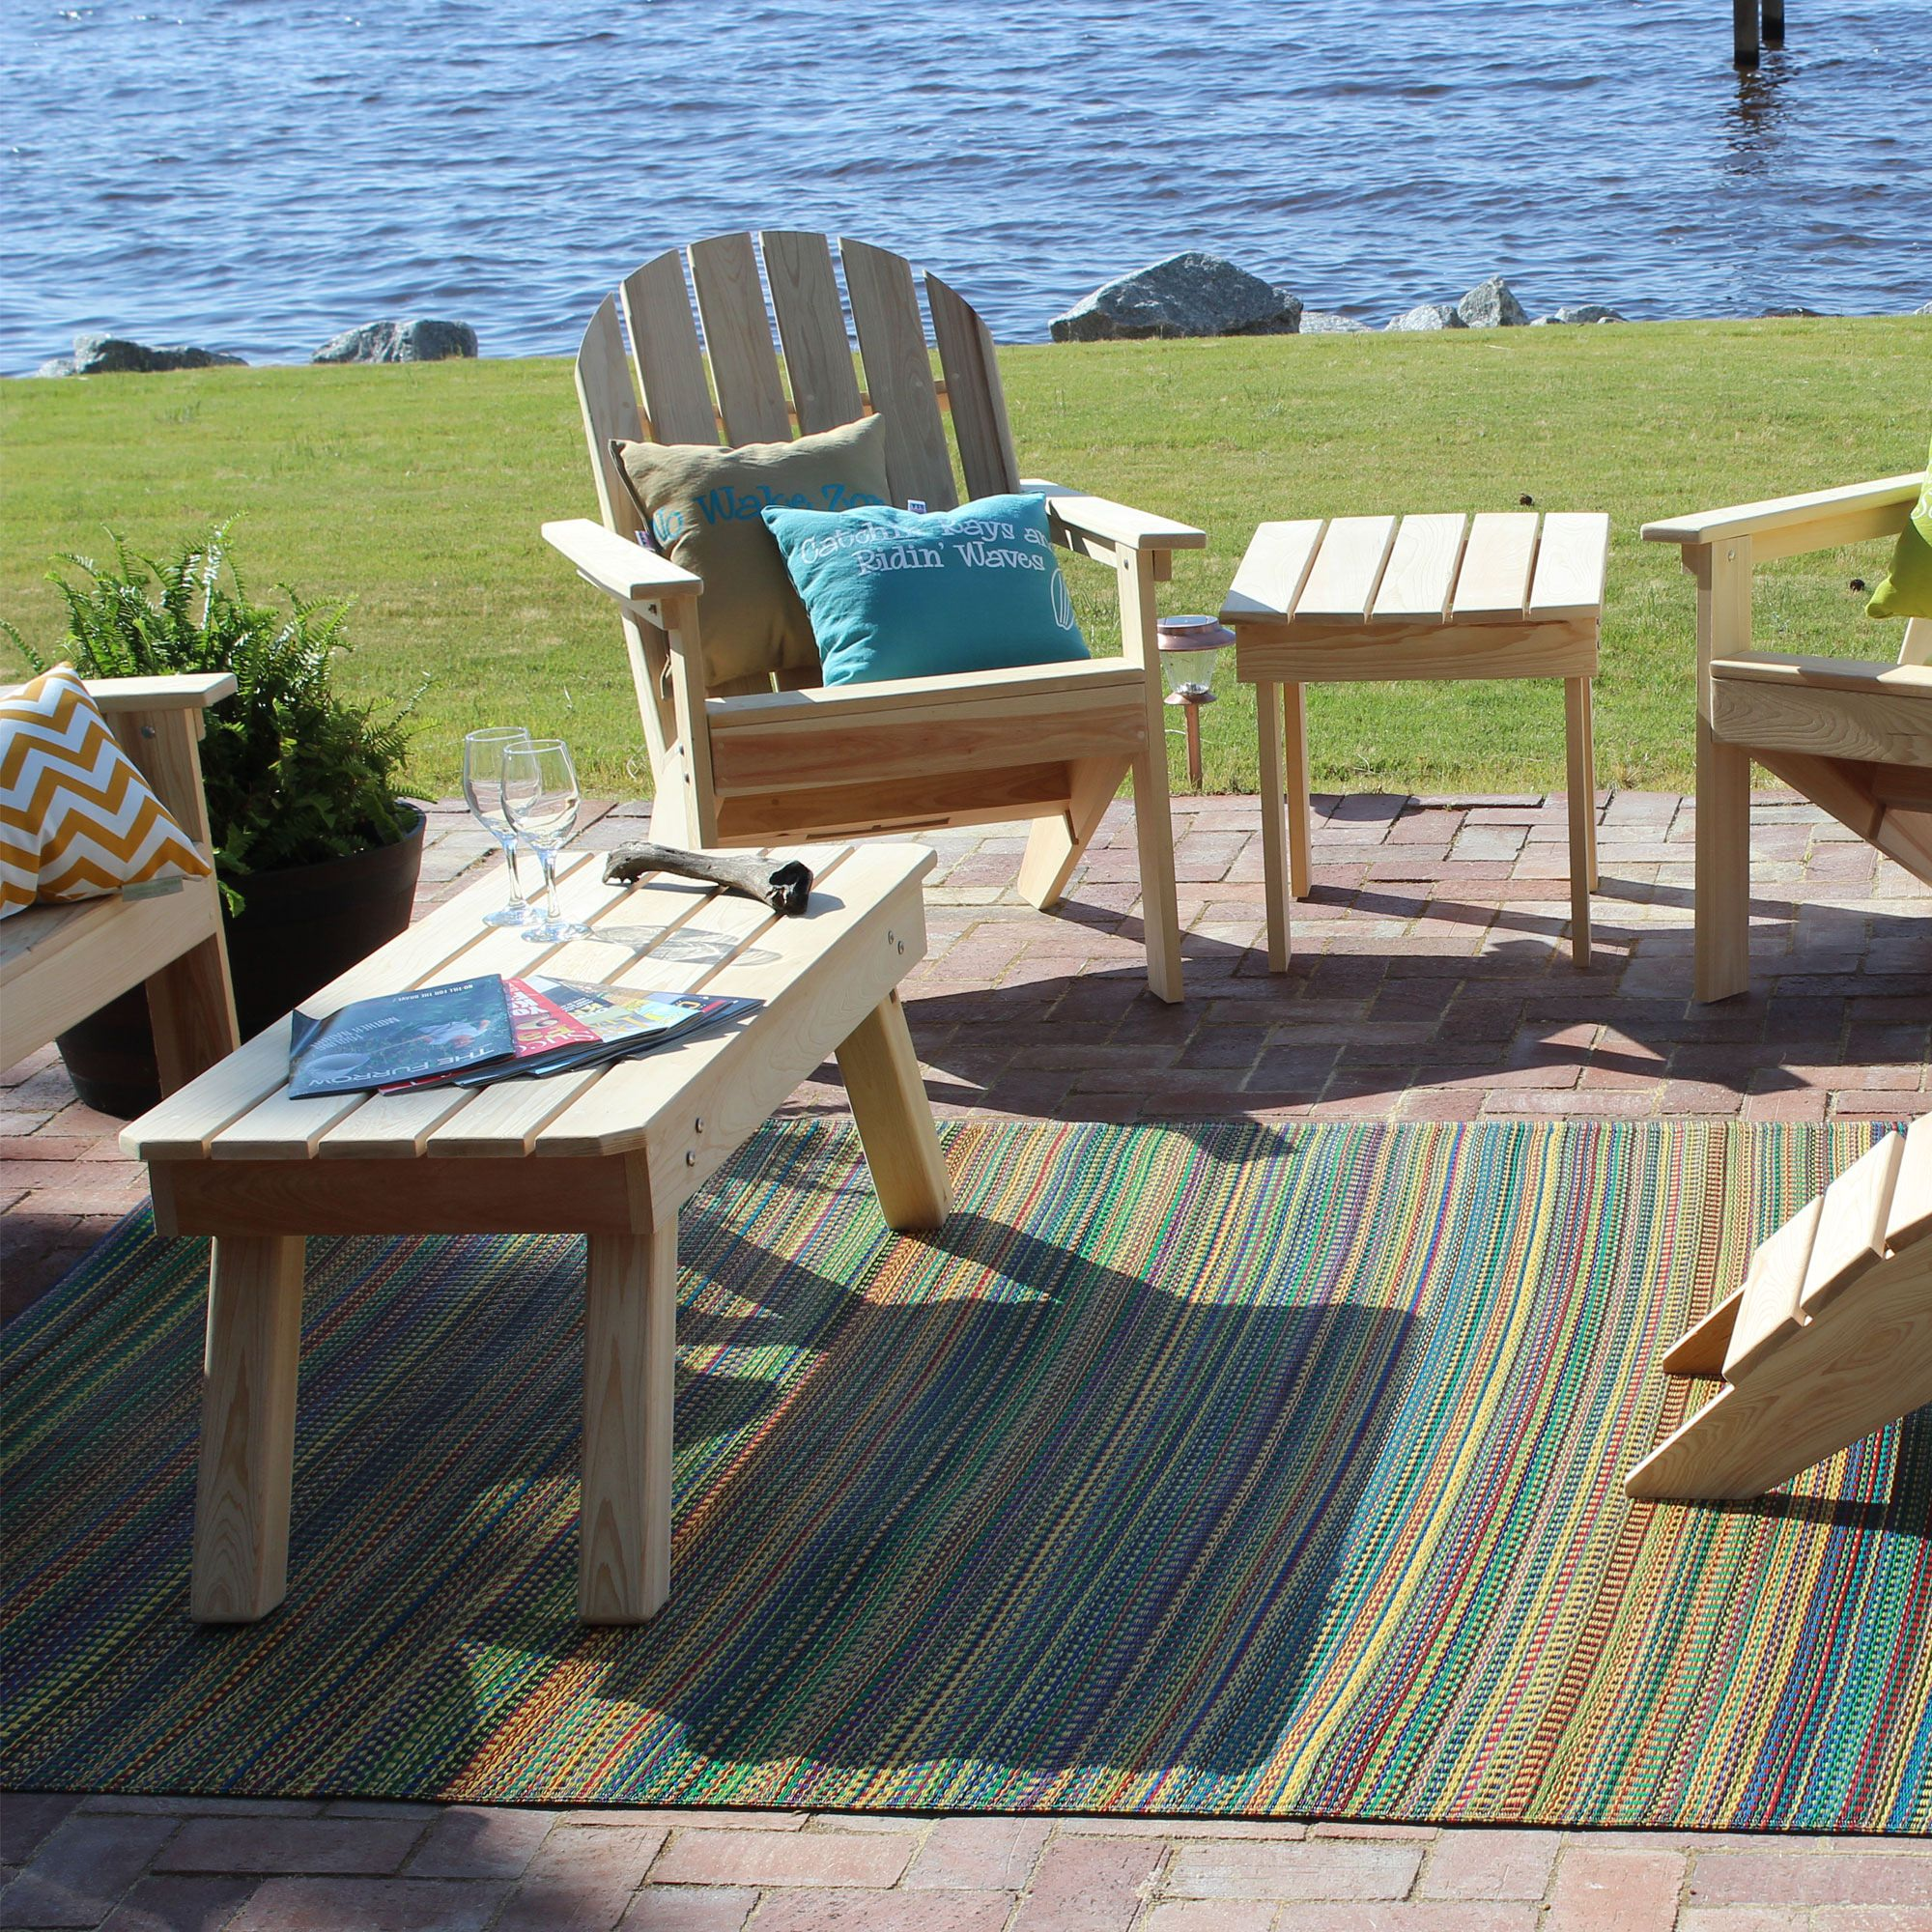 Popular Mixed Rainbow Tones Outdoor Mat outdoor rugs for decks and patios